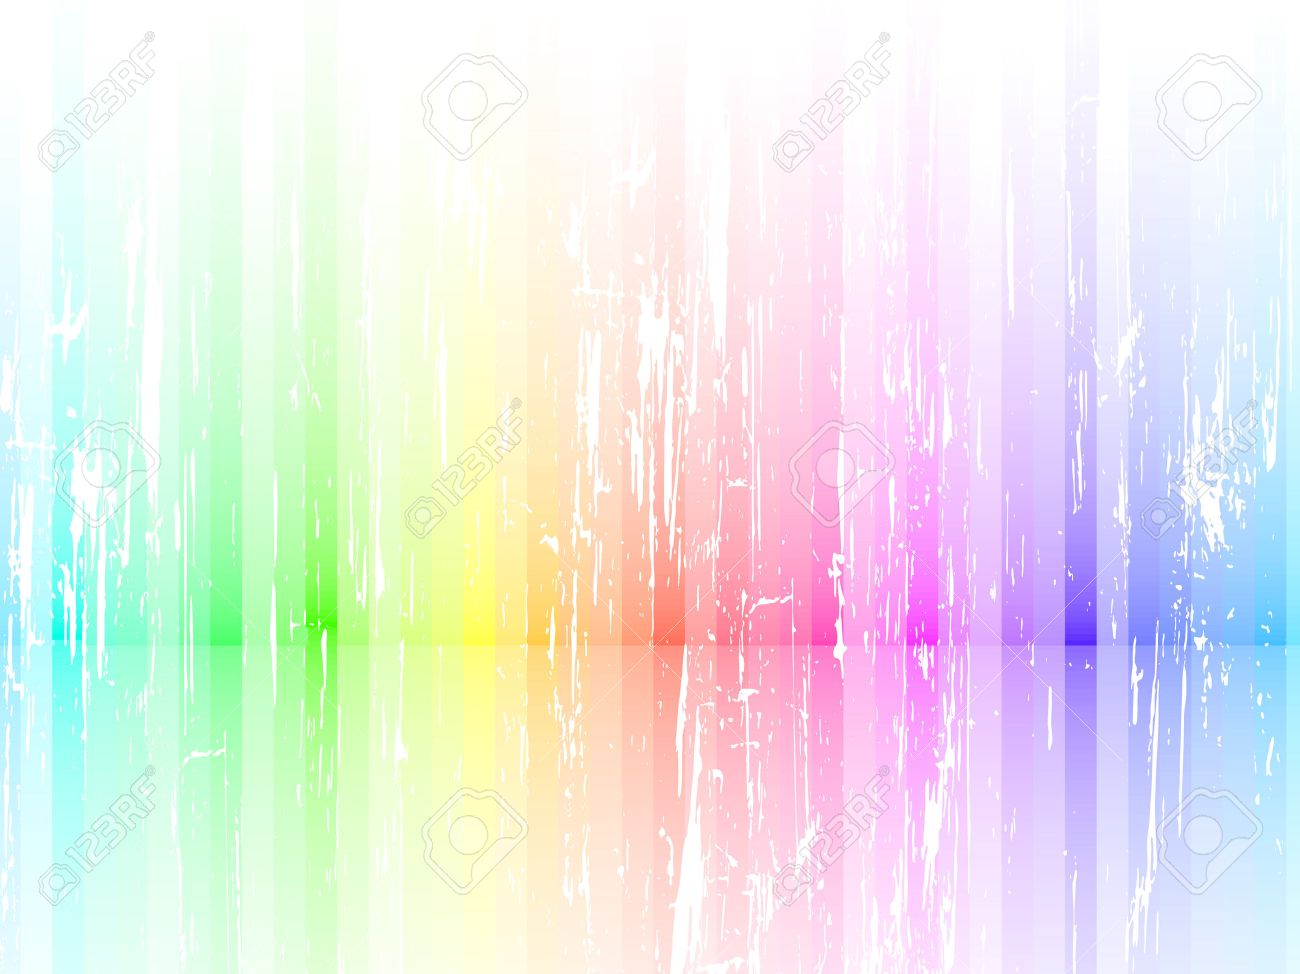 Background image effects - Abstract Grunge Background Blur Effect Stock Vector 5692914